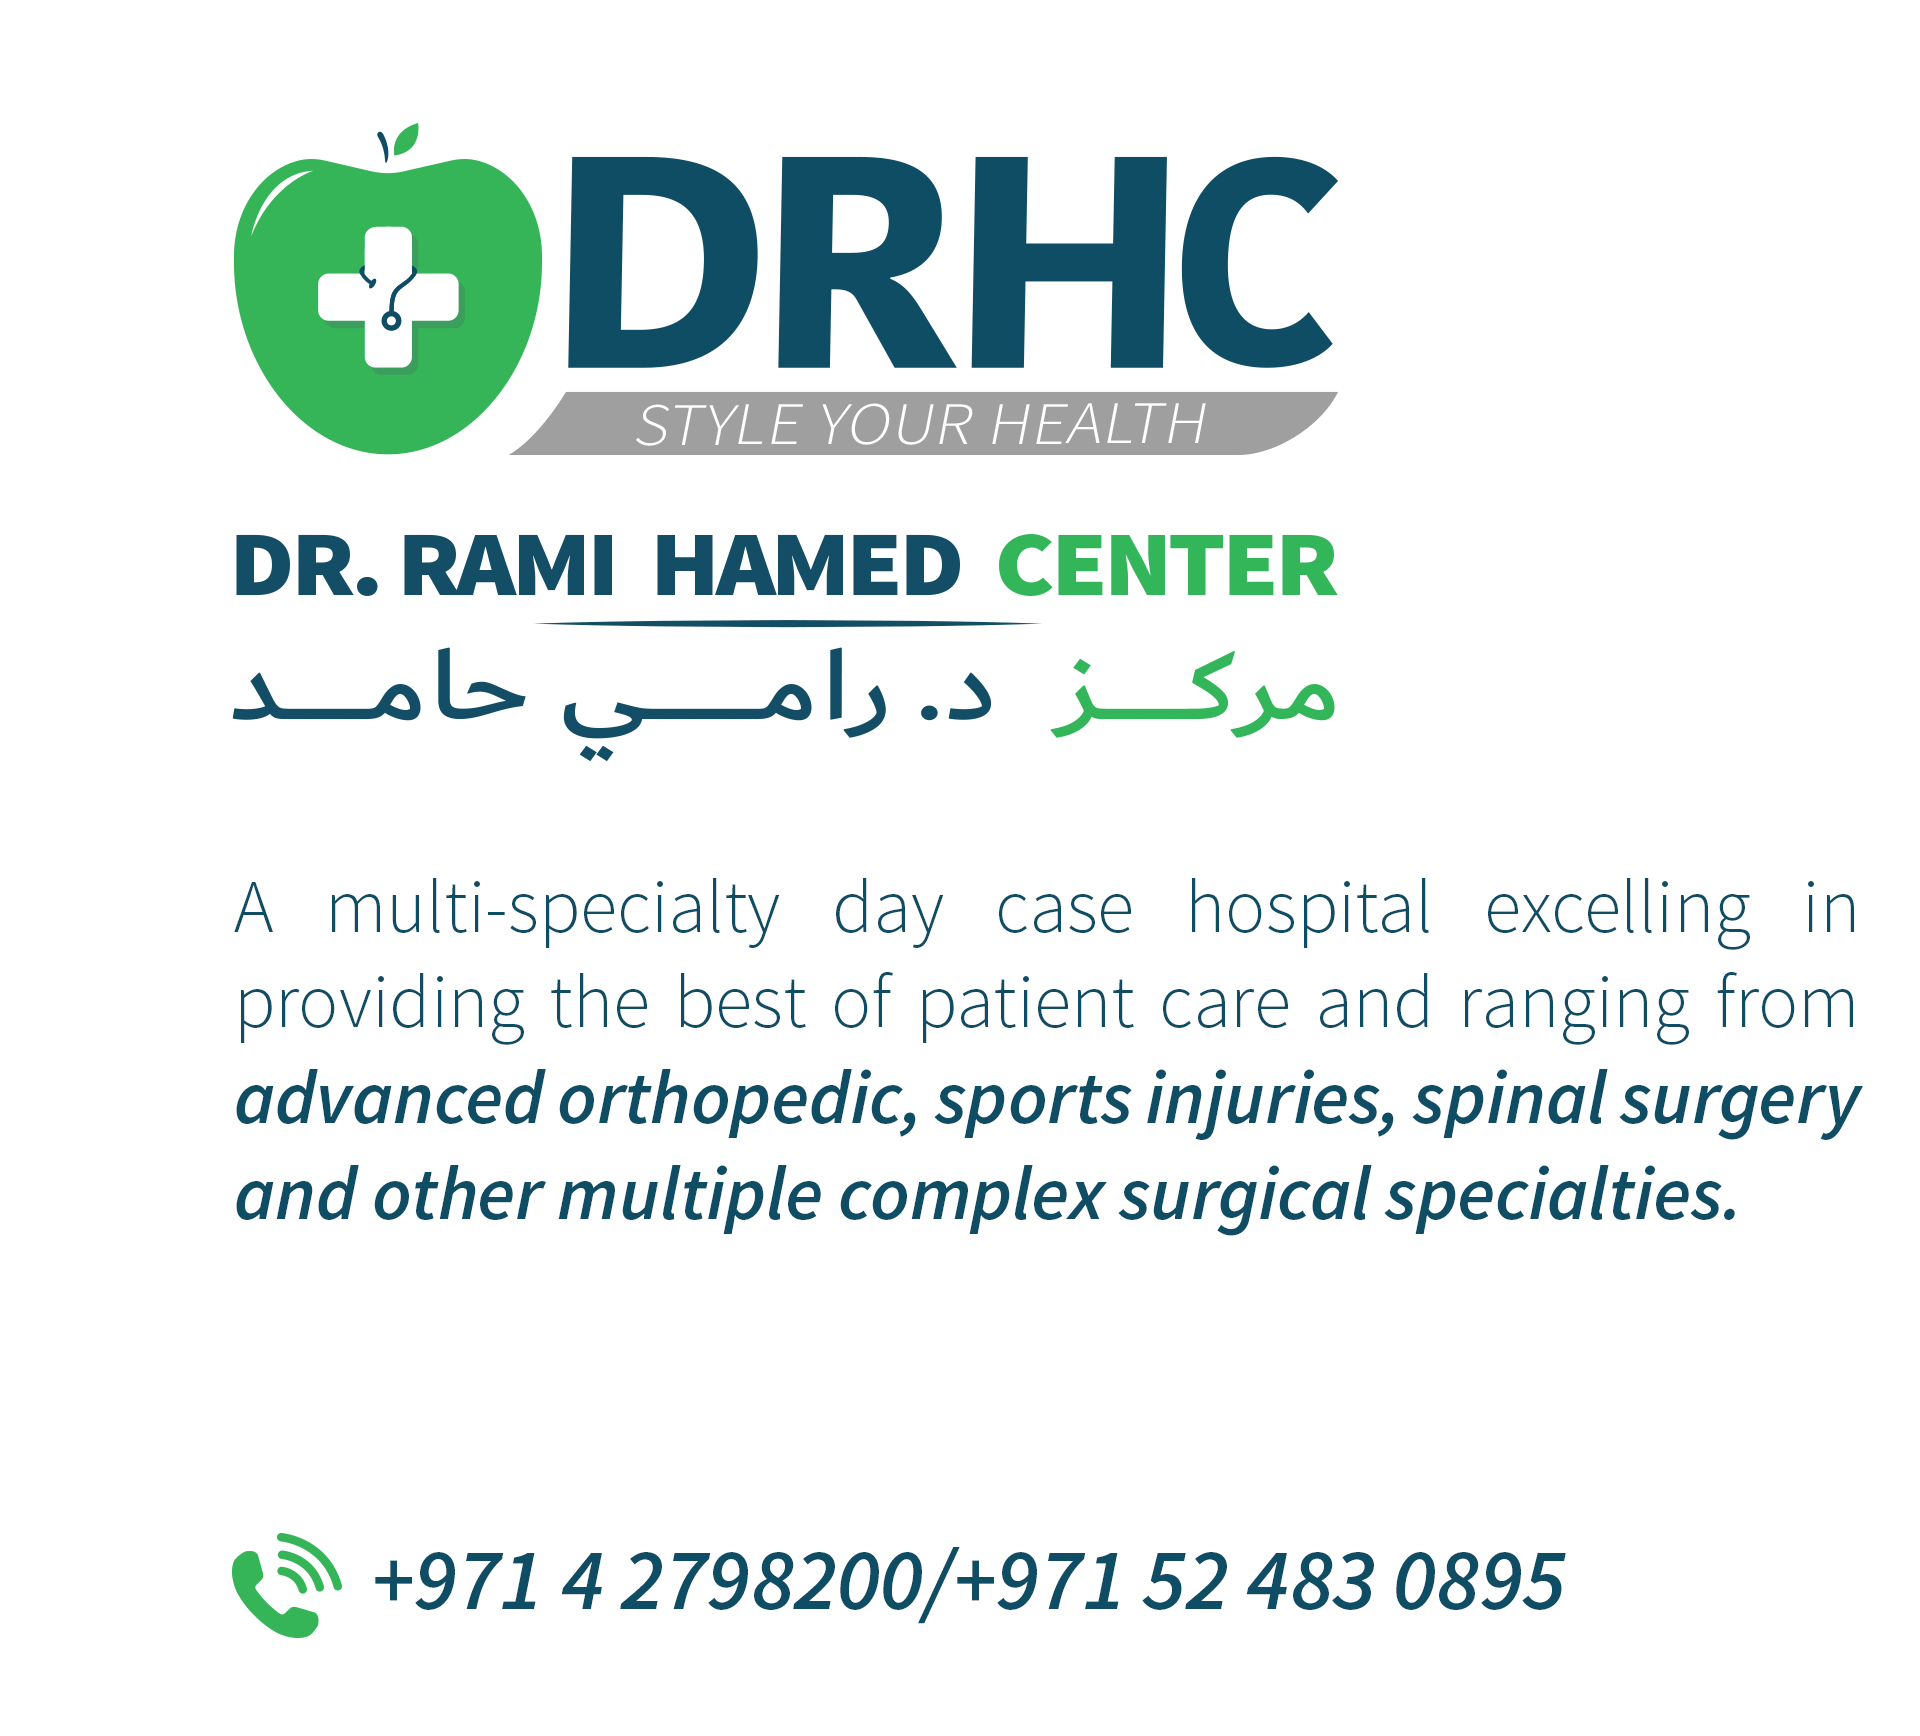 Dr Rami Hamed Center Dubai - Day case surgery hospital